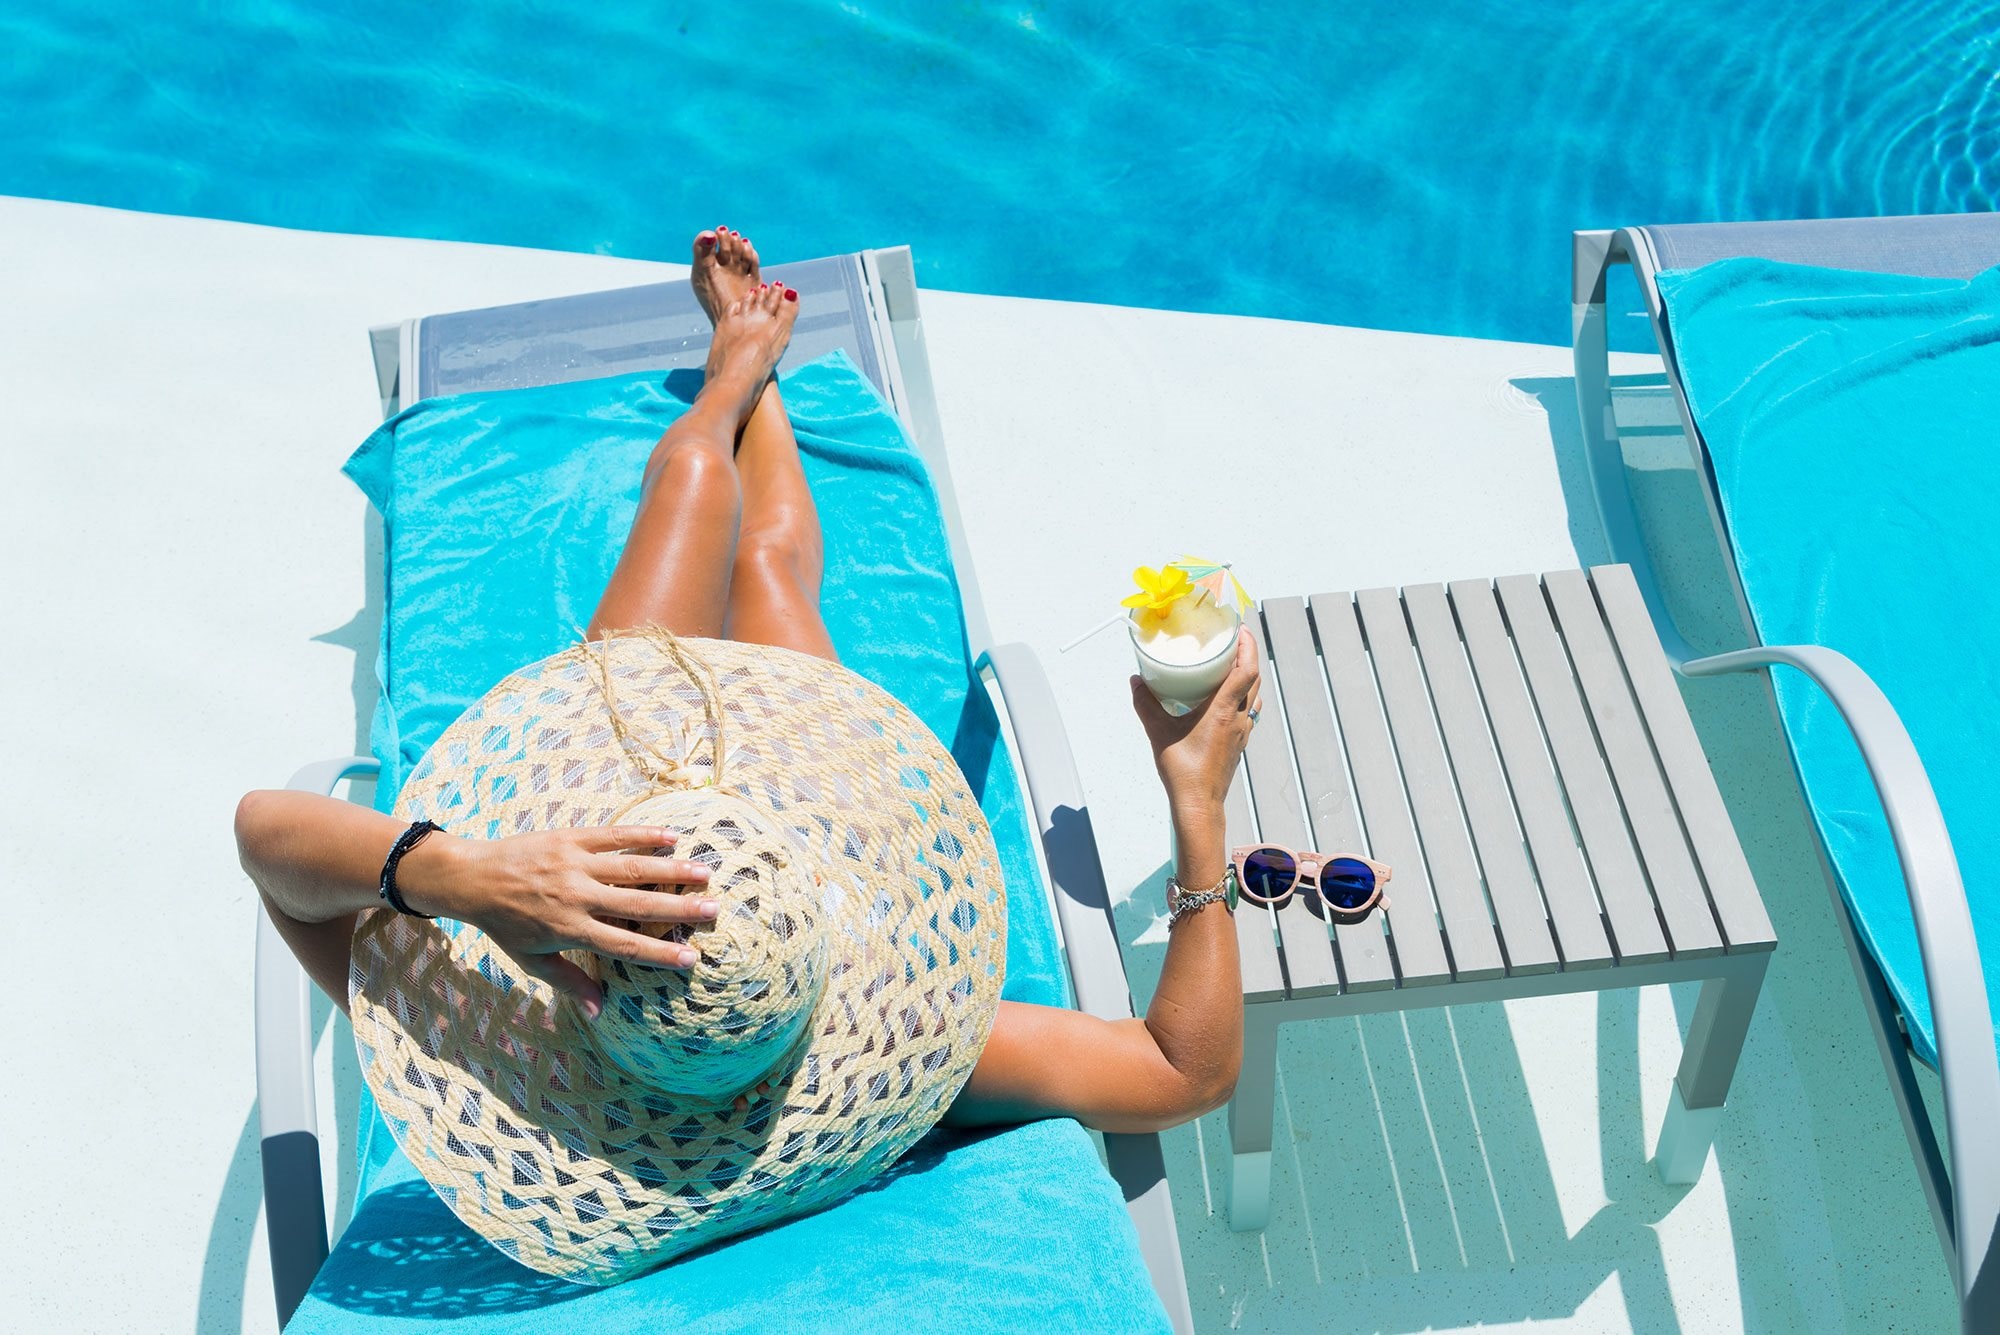 Take a dip in the saltwater pool with aqua ledge